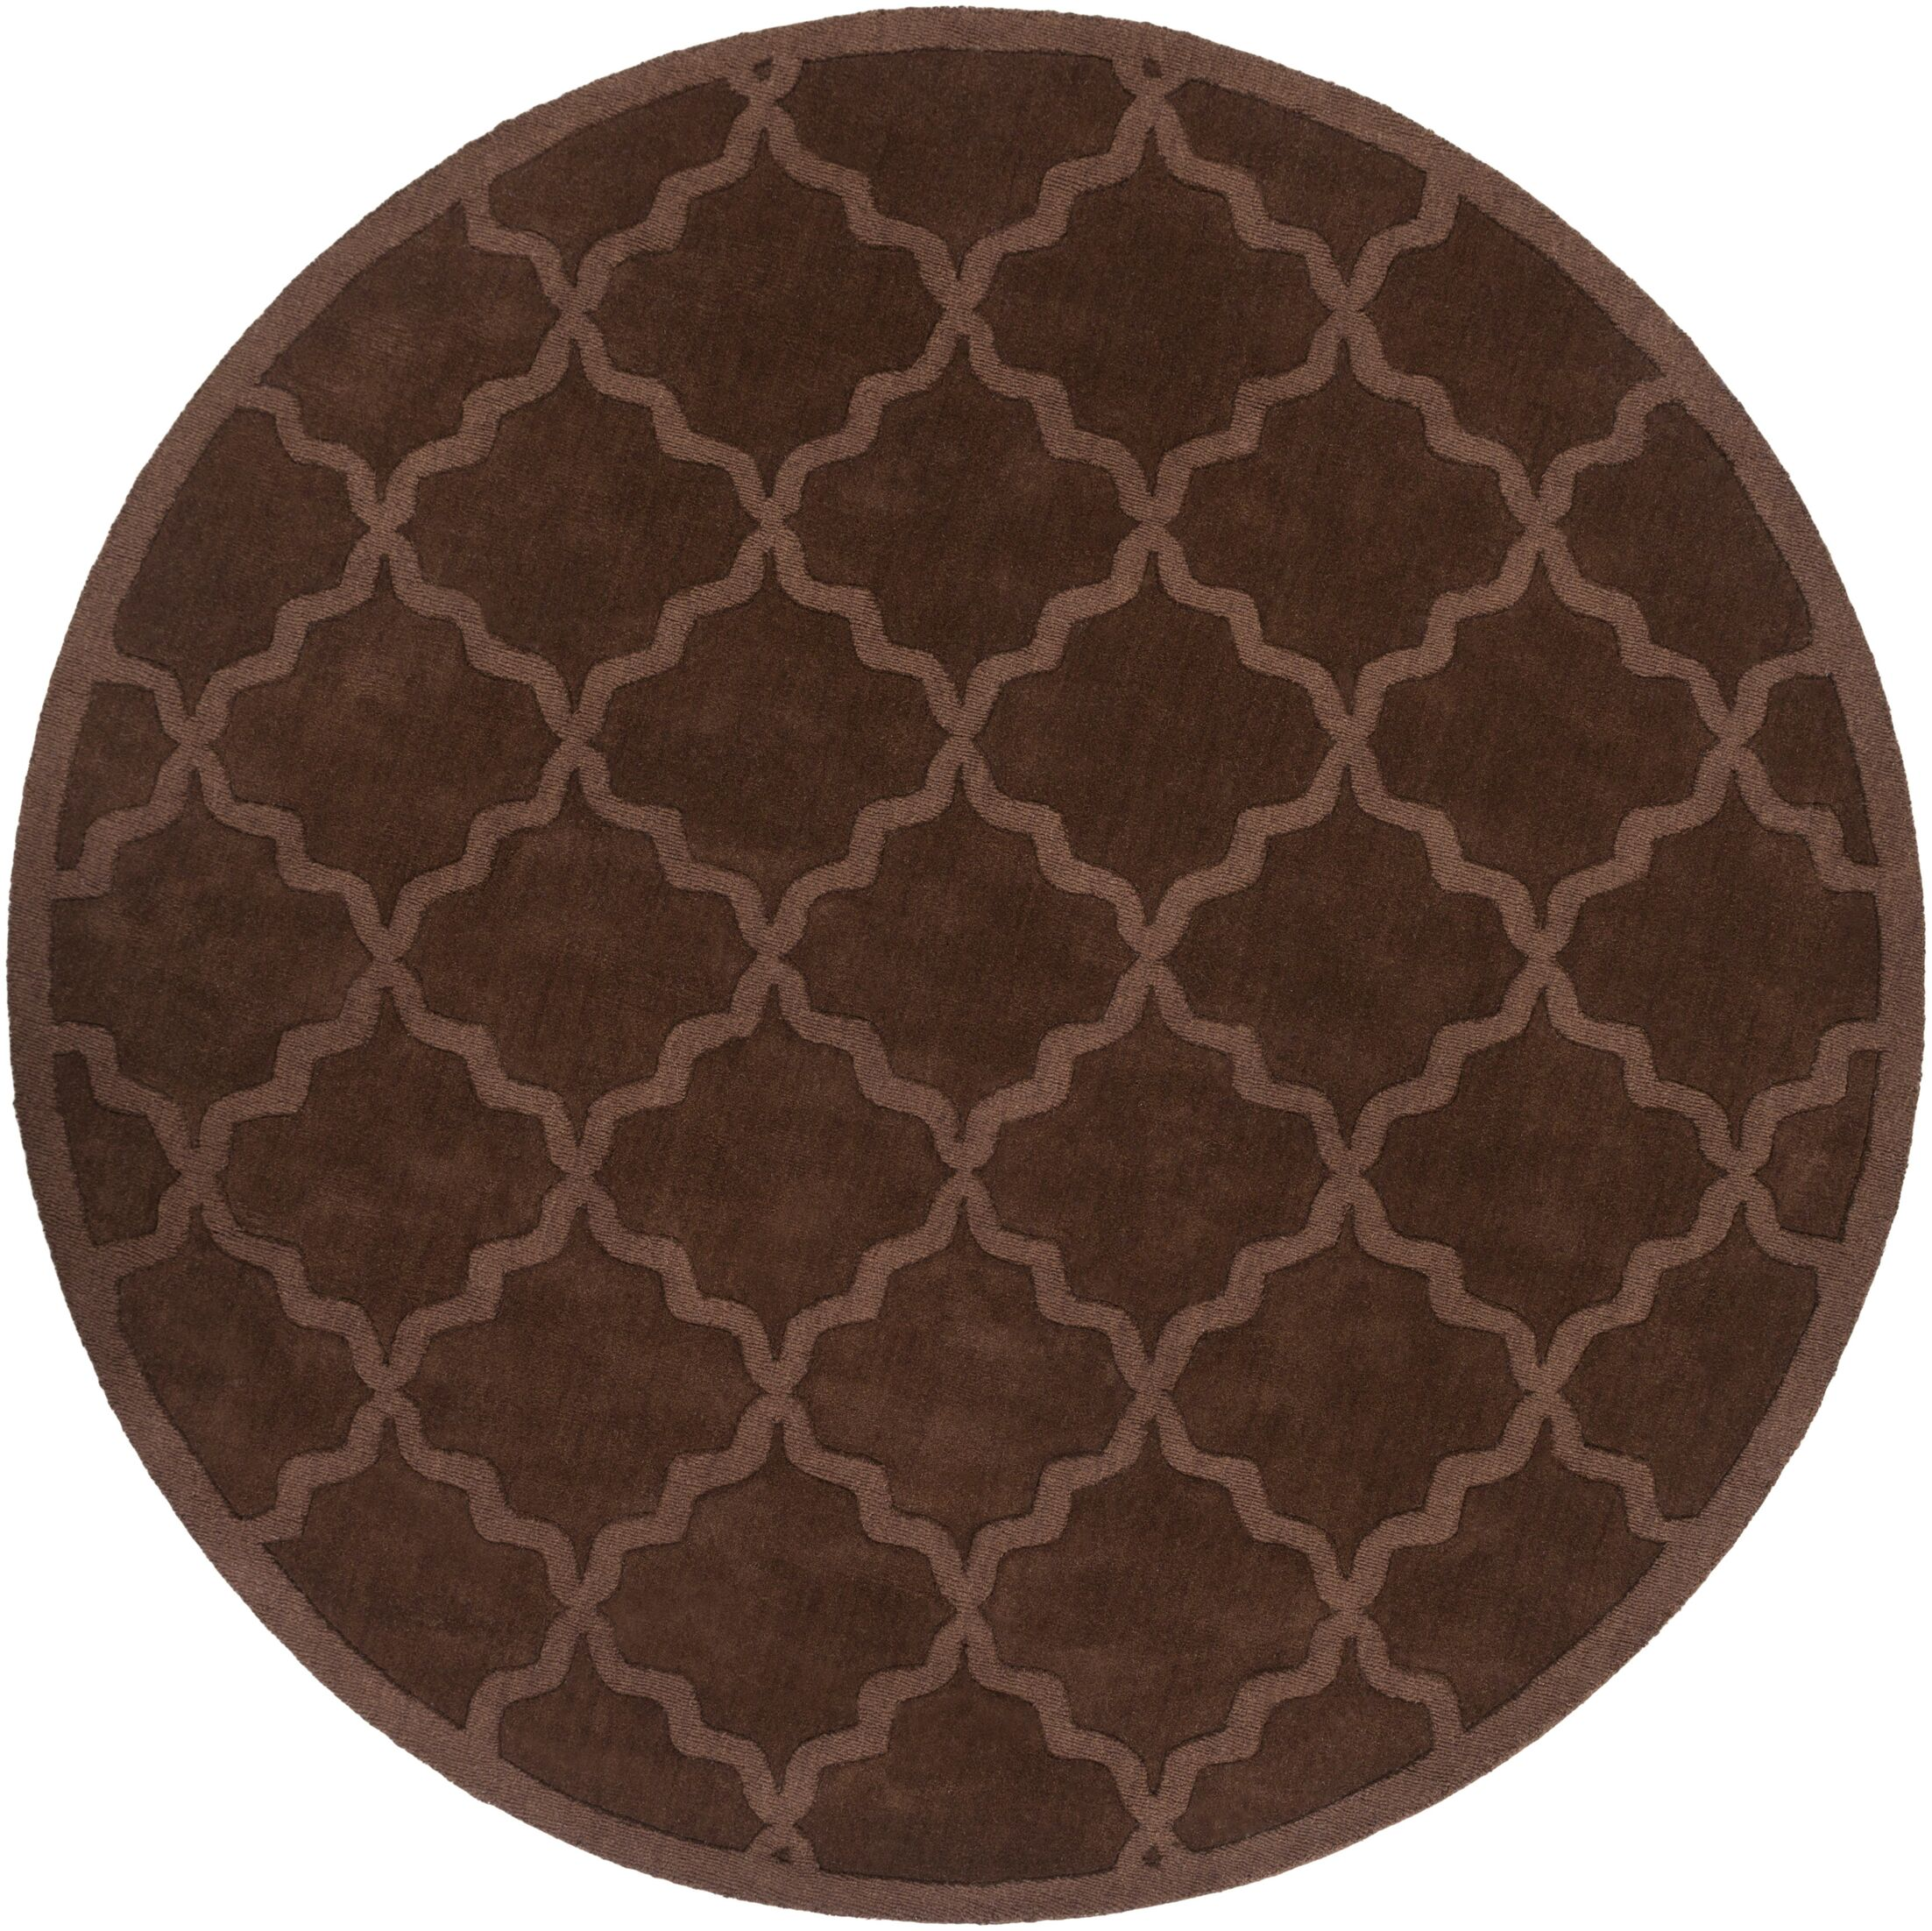 Blankenship Brown Geometric Abbey Area Rug Rug Size: Round 7'9